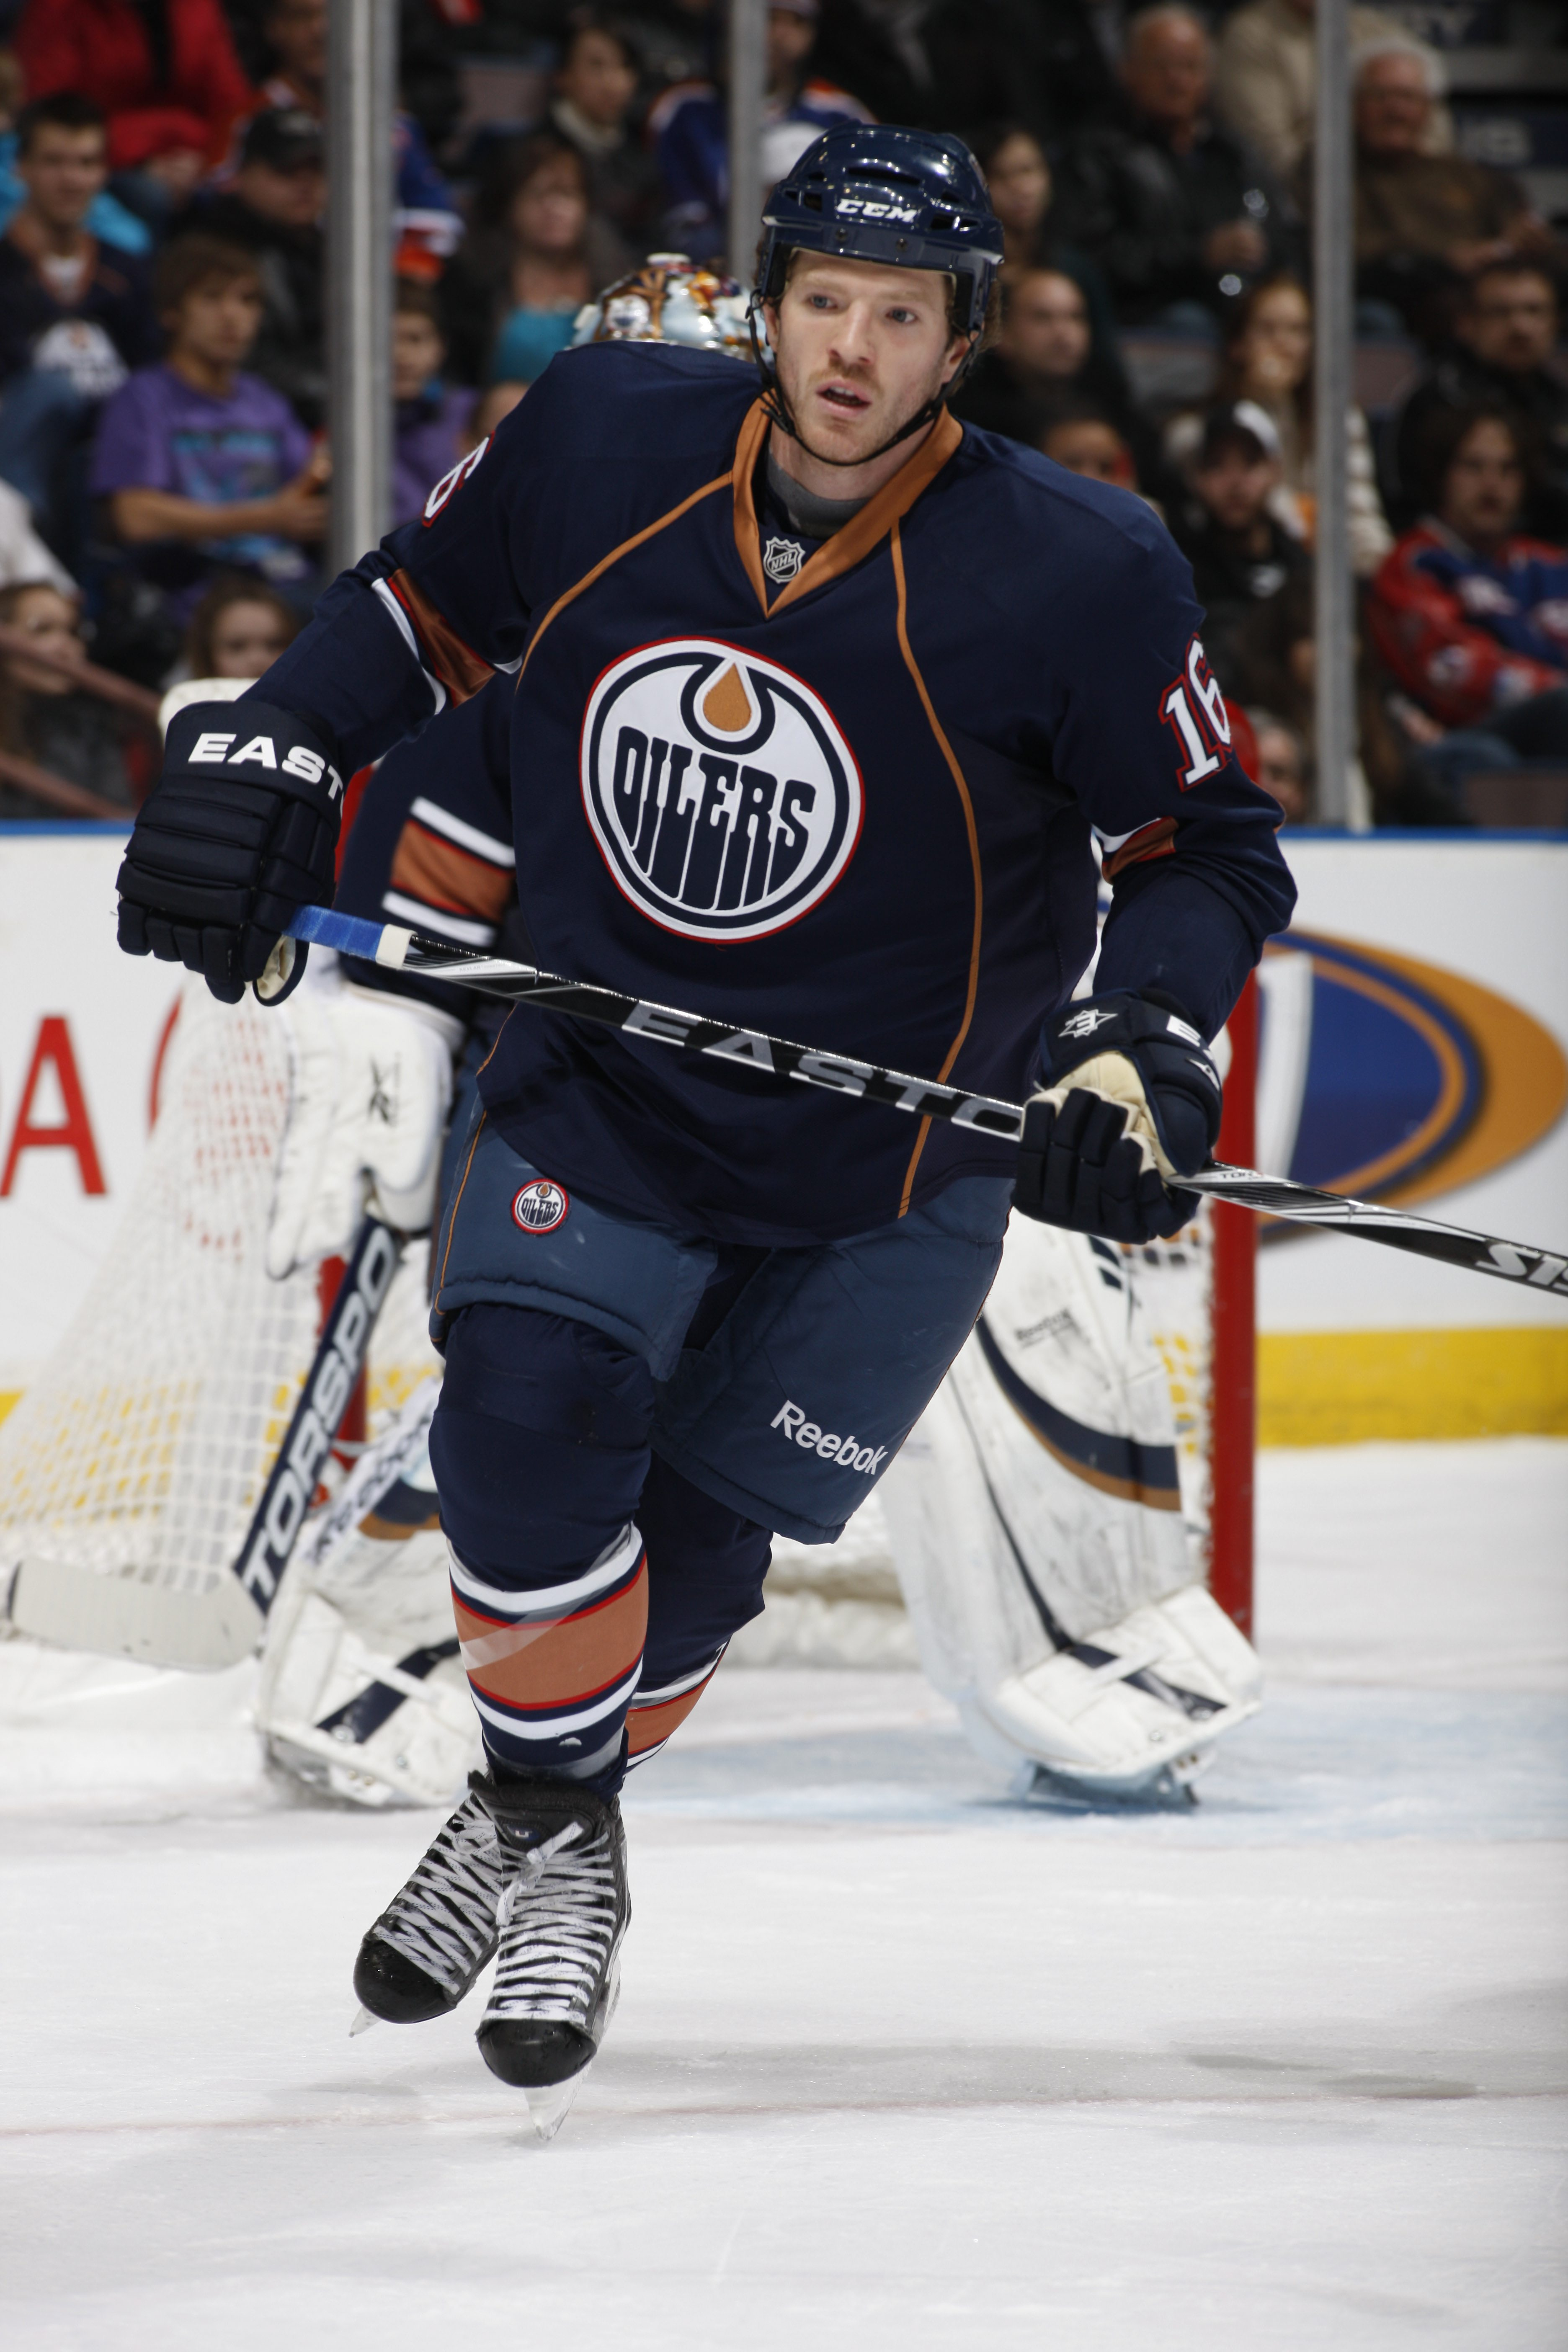 EDMONTON, CANADA - DECEMBER 16: Colin Fraser #16 of the Edmonton Oilers skates against the Columbus Blue Jackets on December 16, 2010 at Rexall Place in Edmonton, Alberta, Canada. (Photo by Dale MacMillan/Getty Images)